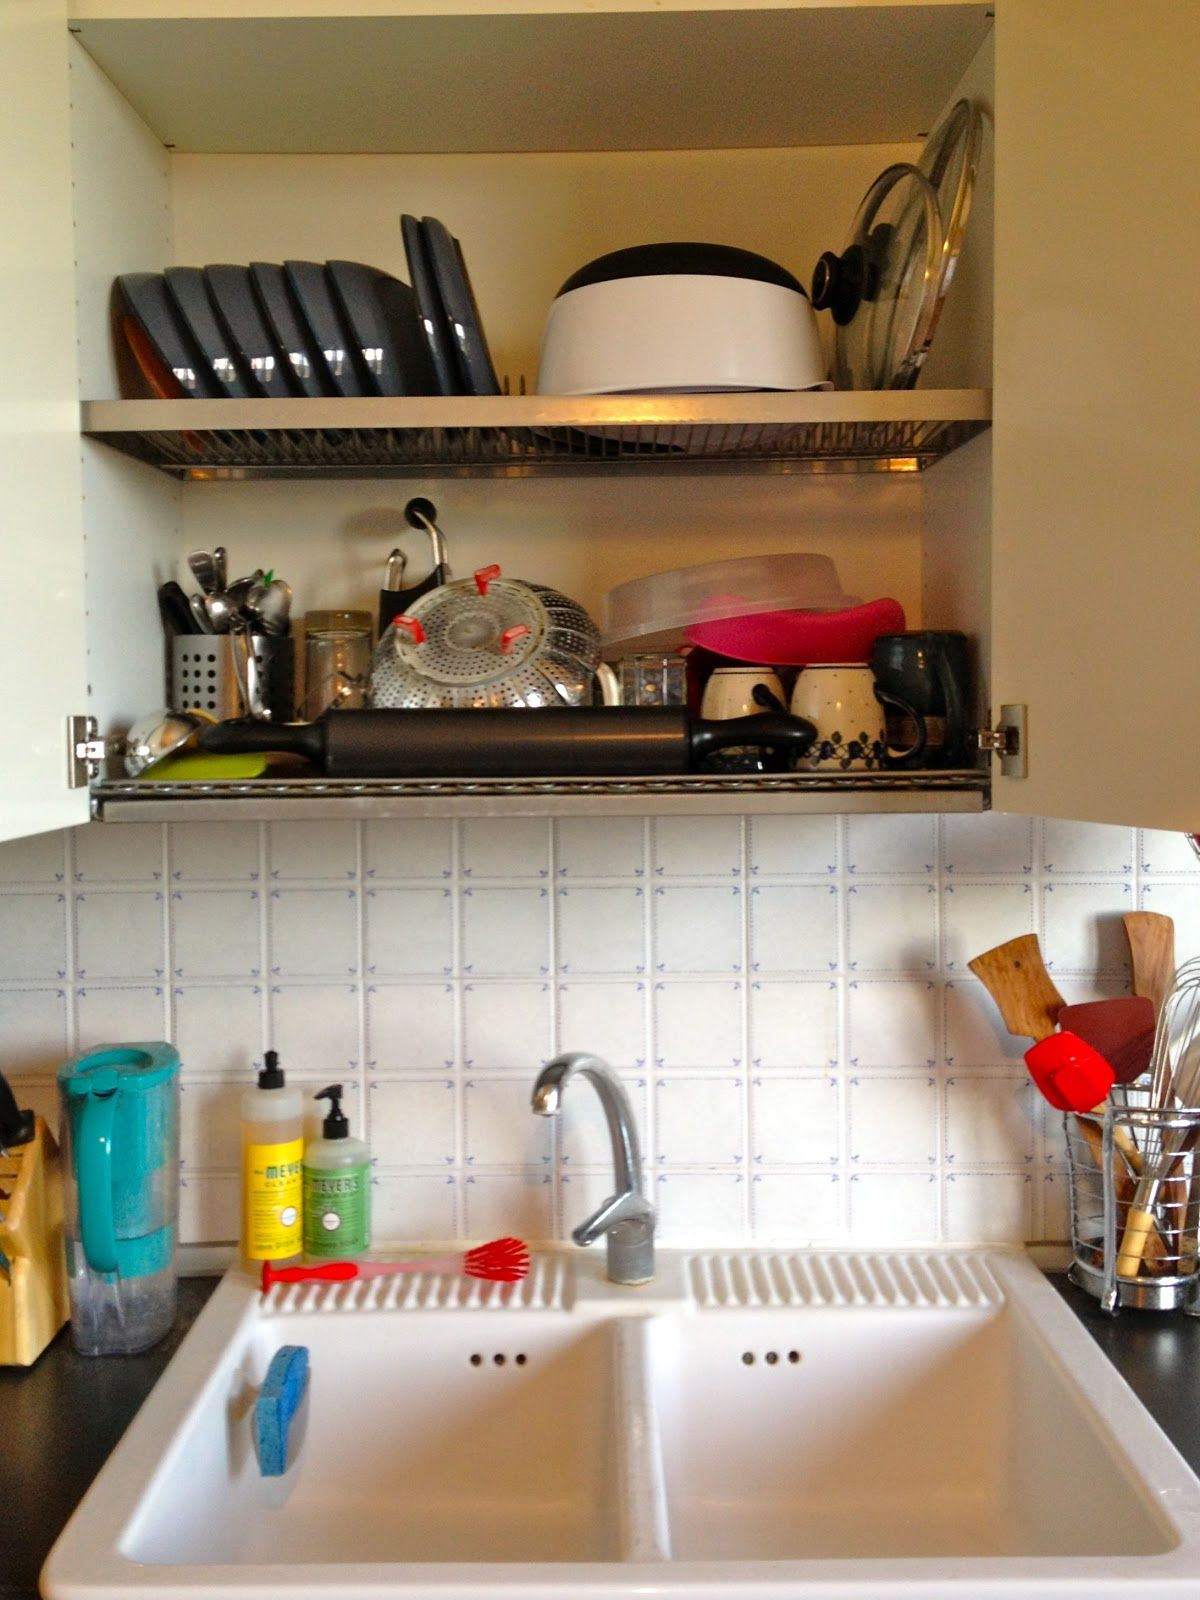 Over The Sink Drying Rack Over Sink Drying Rack Hidden Behind A Cupboard Door Brilliant